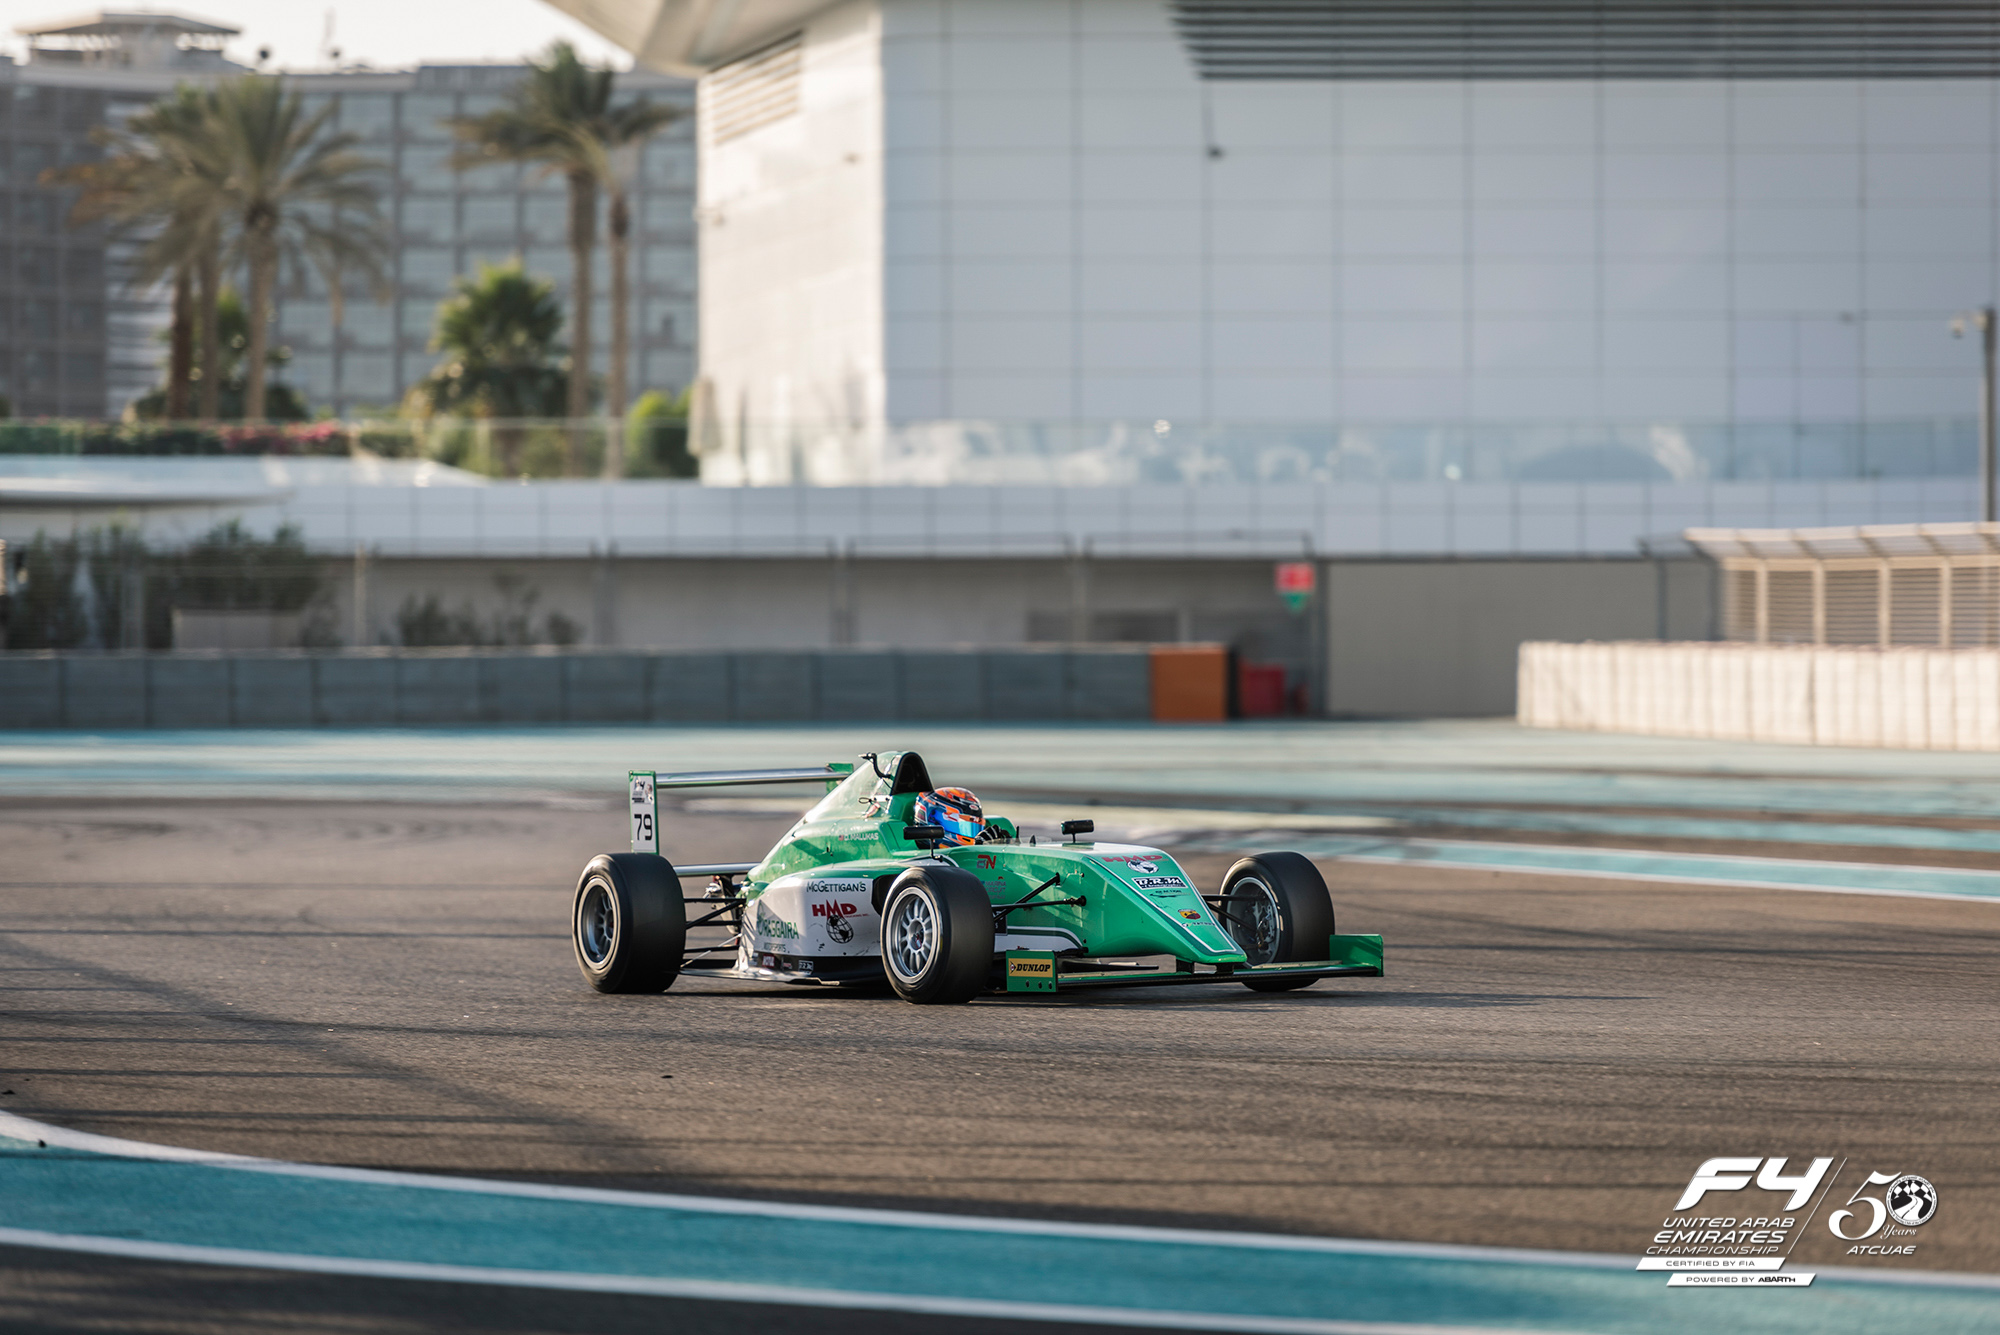 2016 12 18   F4 Second Roud   Abu Dhabi 36 Of 39